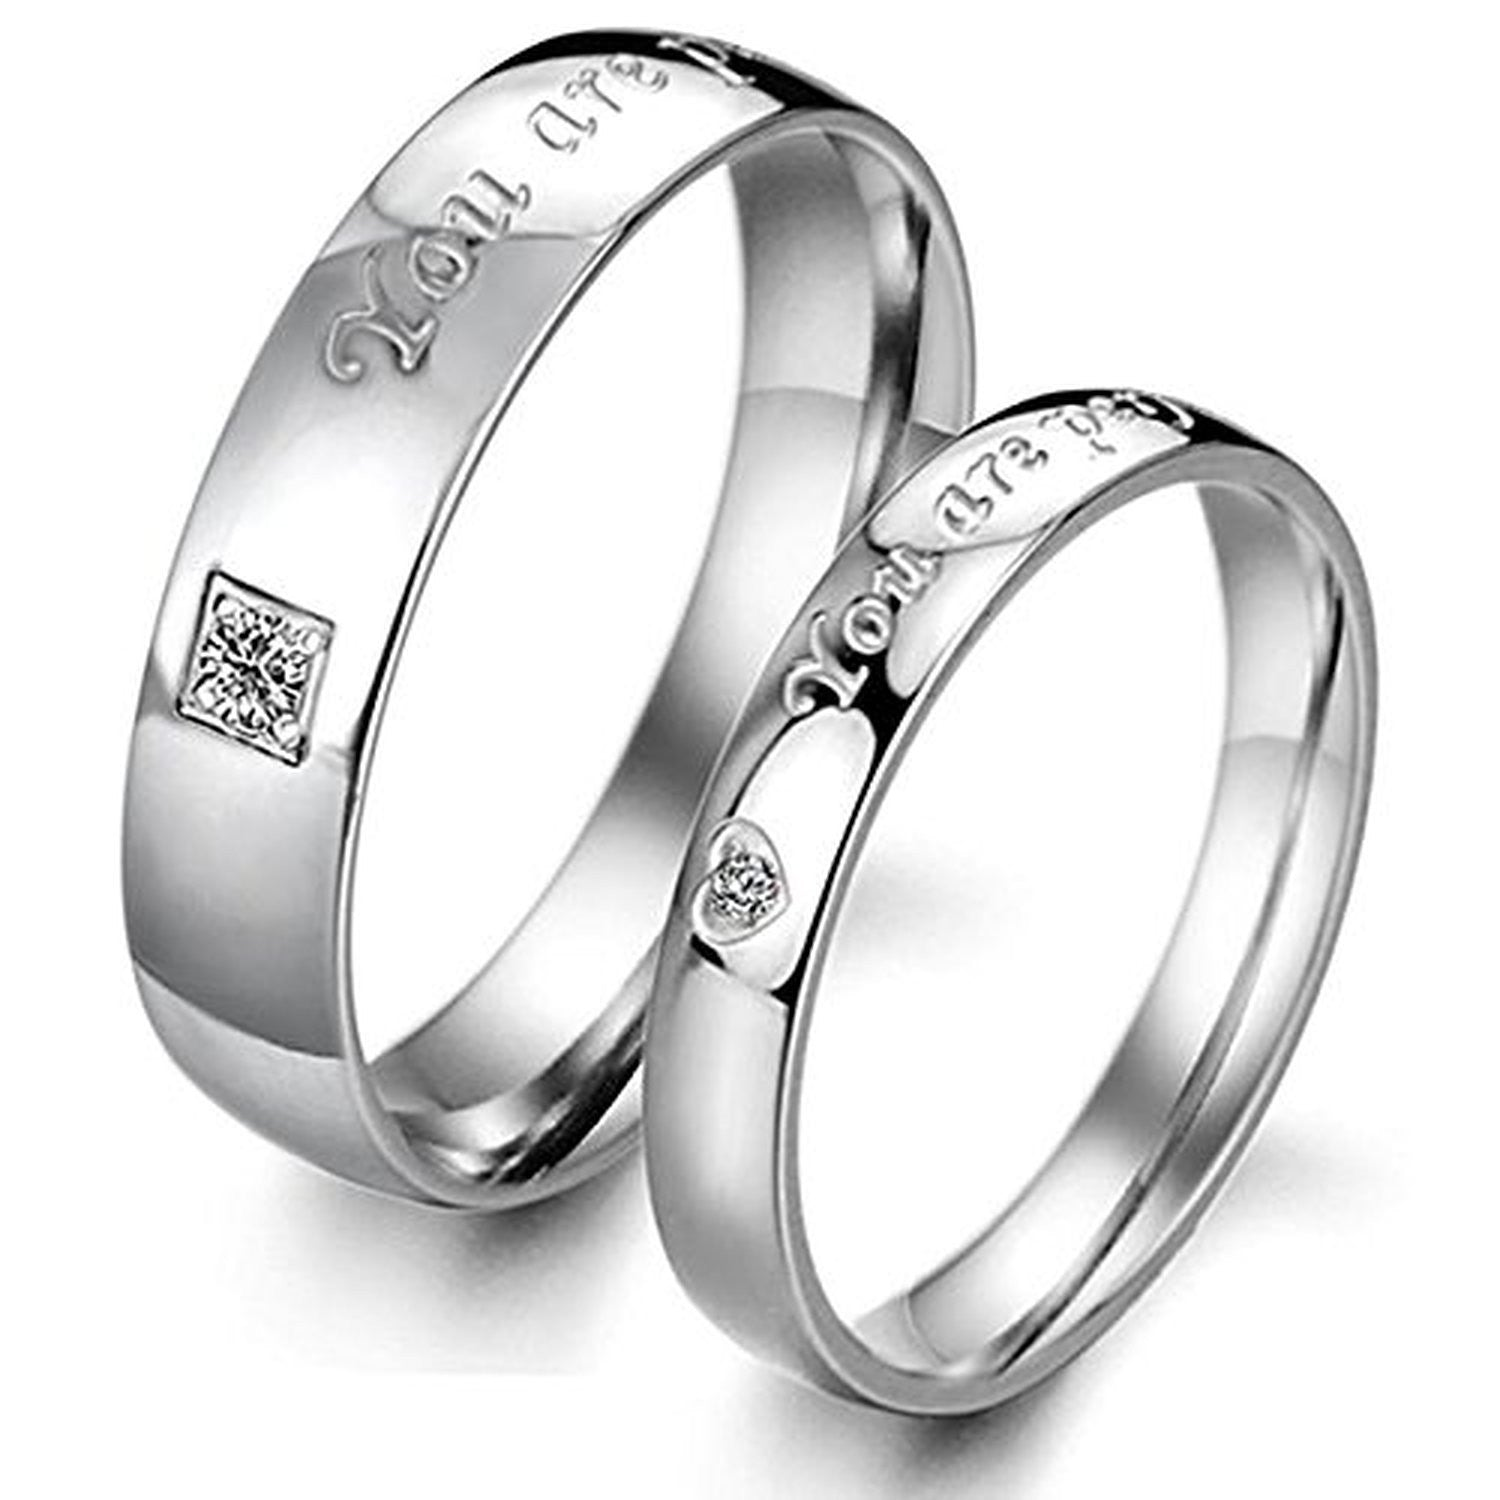 penney of evermarker for rikof wedding couple jc rings jcpenney weddings luxury com elegant goodoneitem